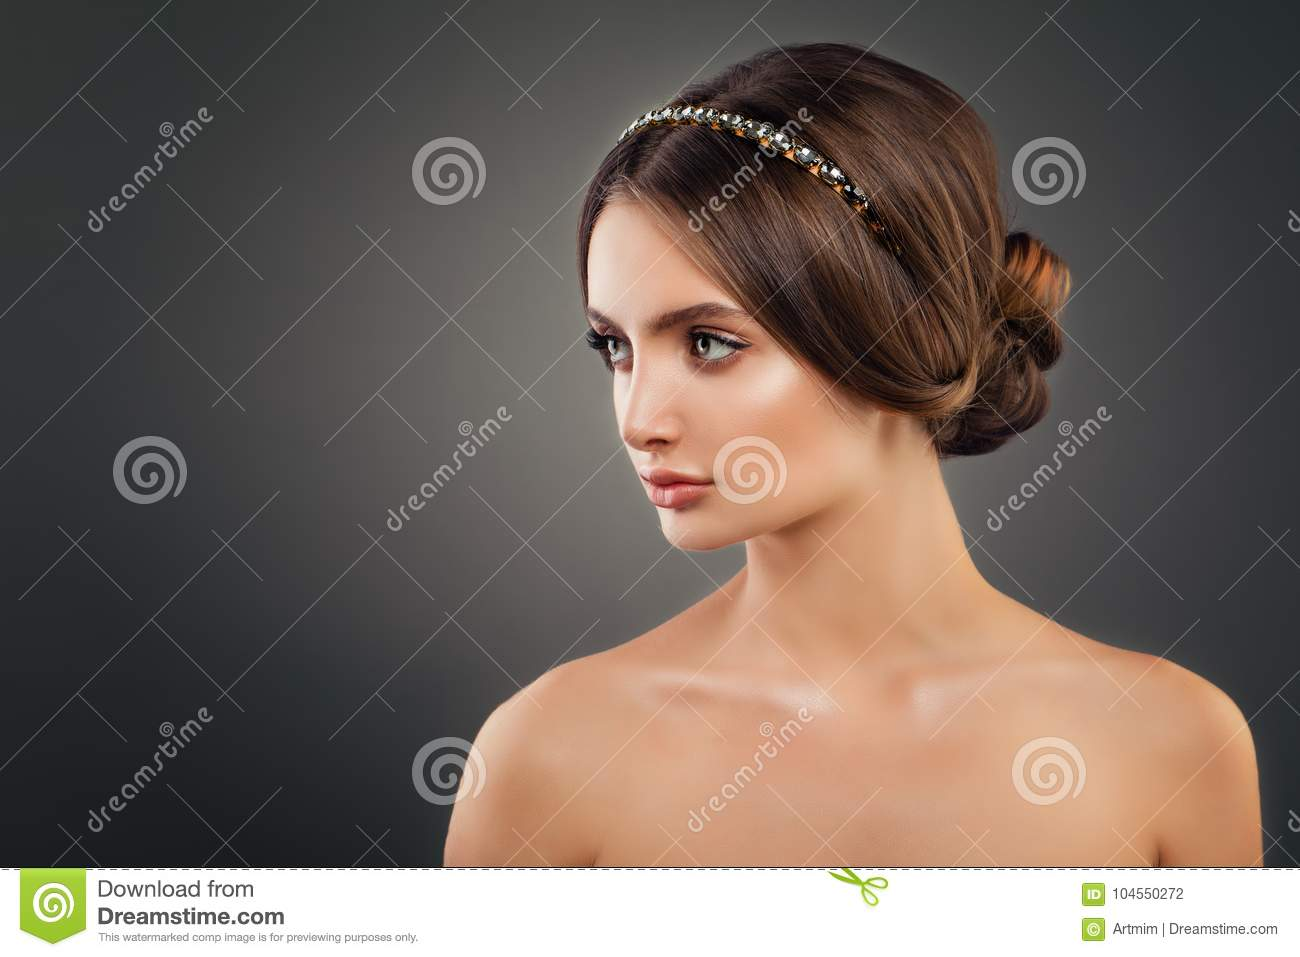 Beautiful Young Woman Fashion Model with Wedding Hairstyle